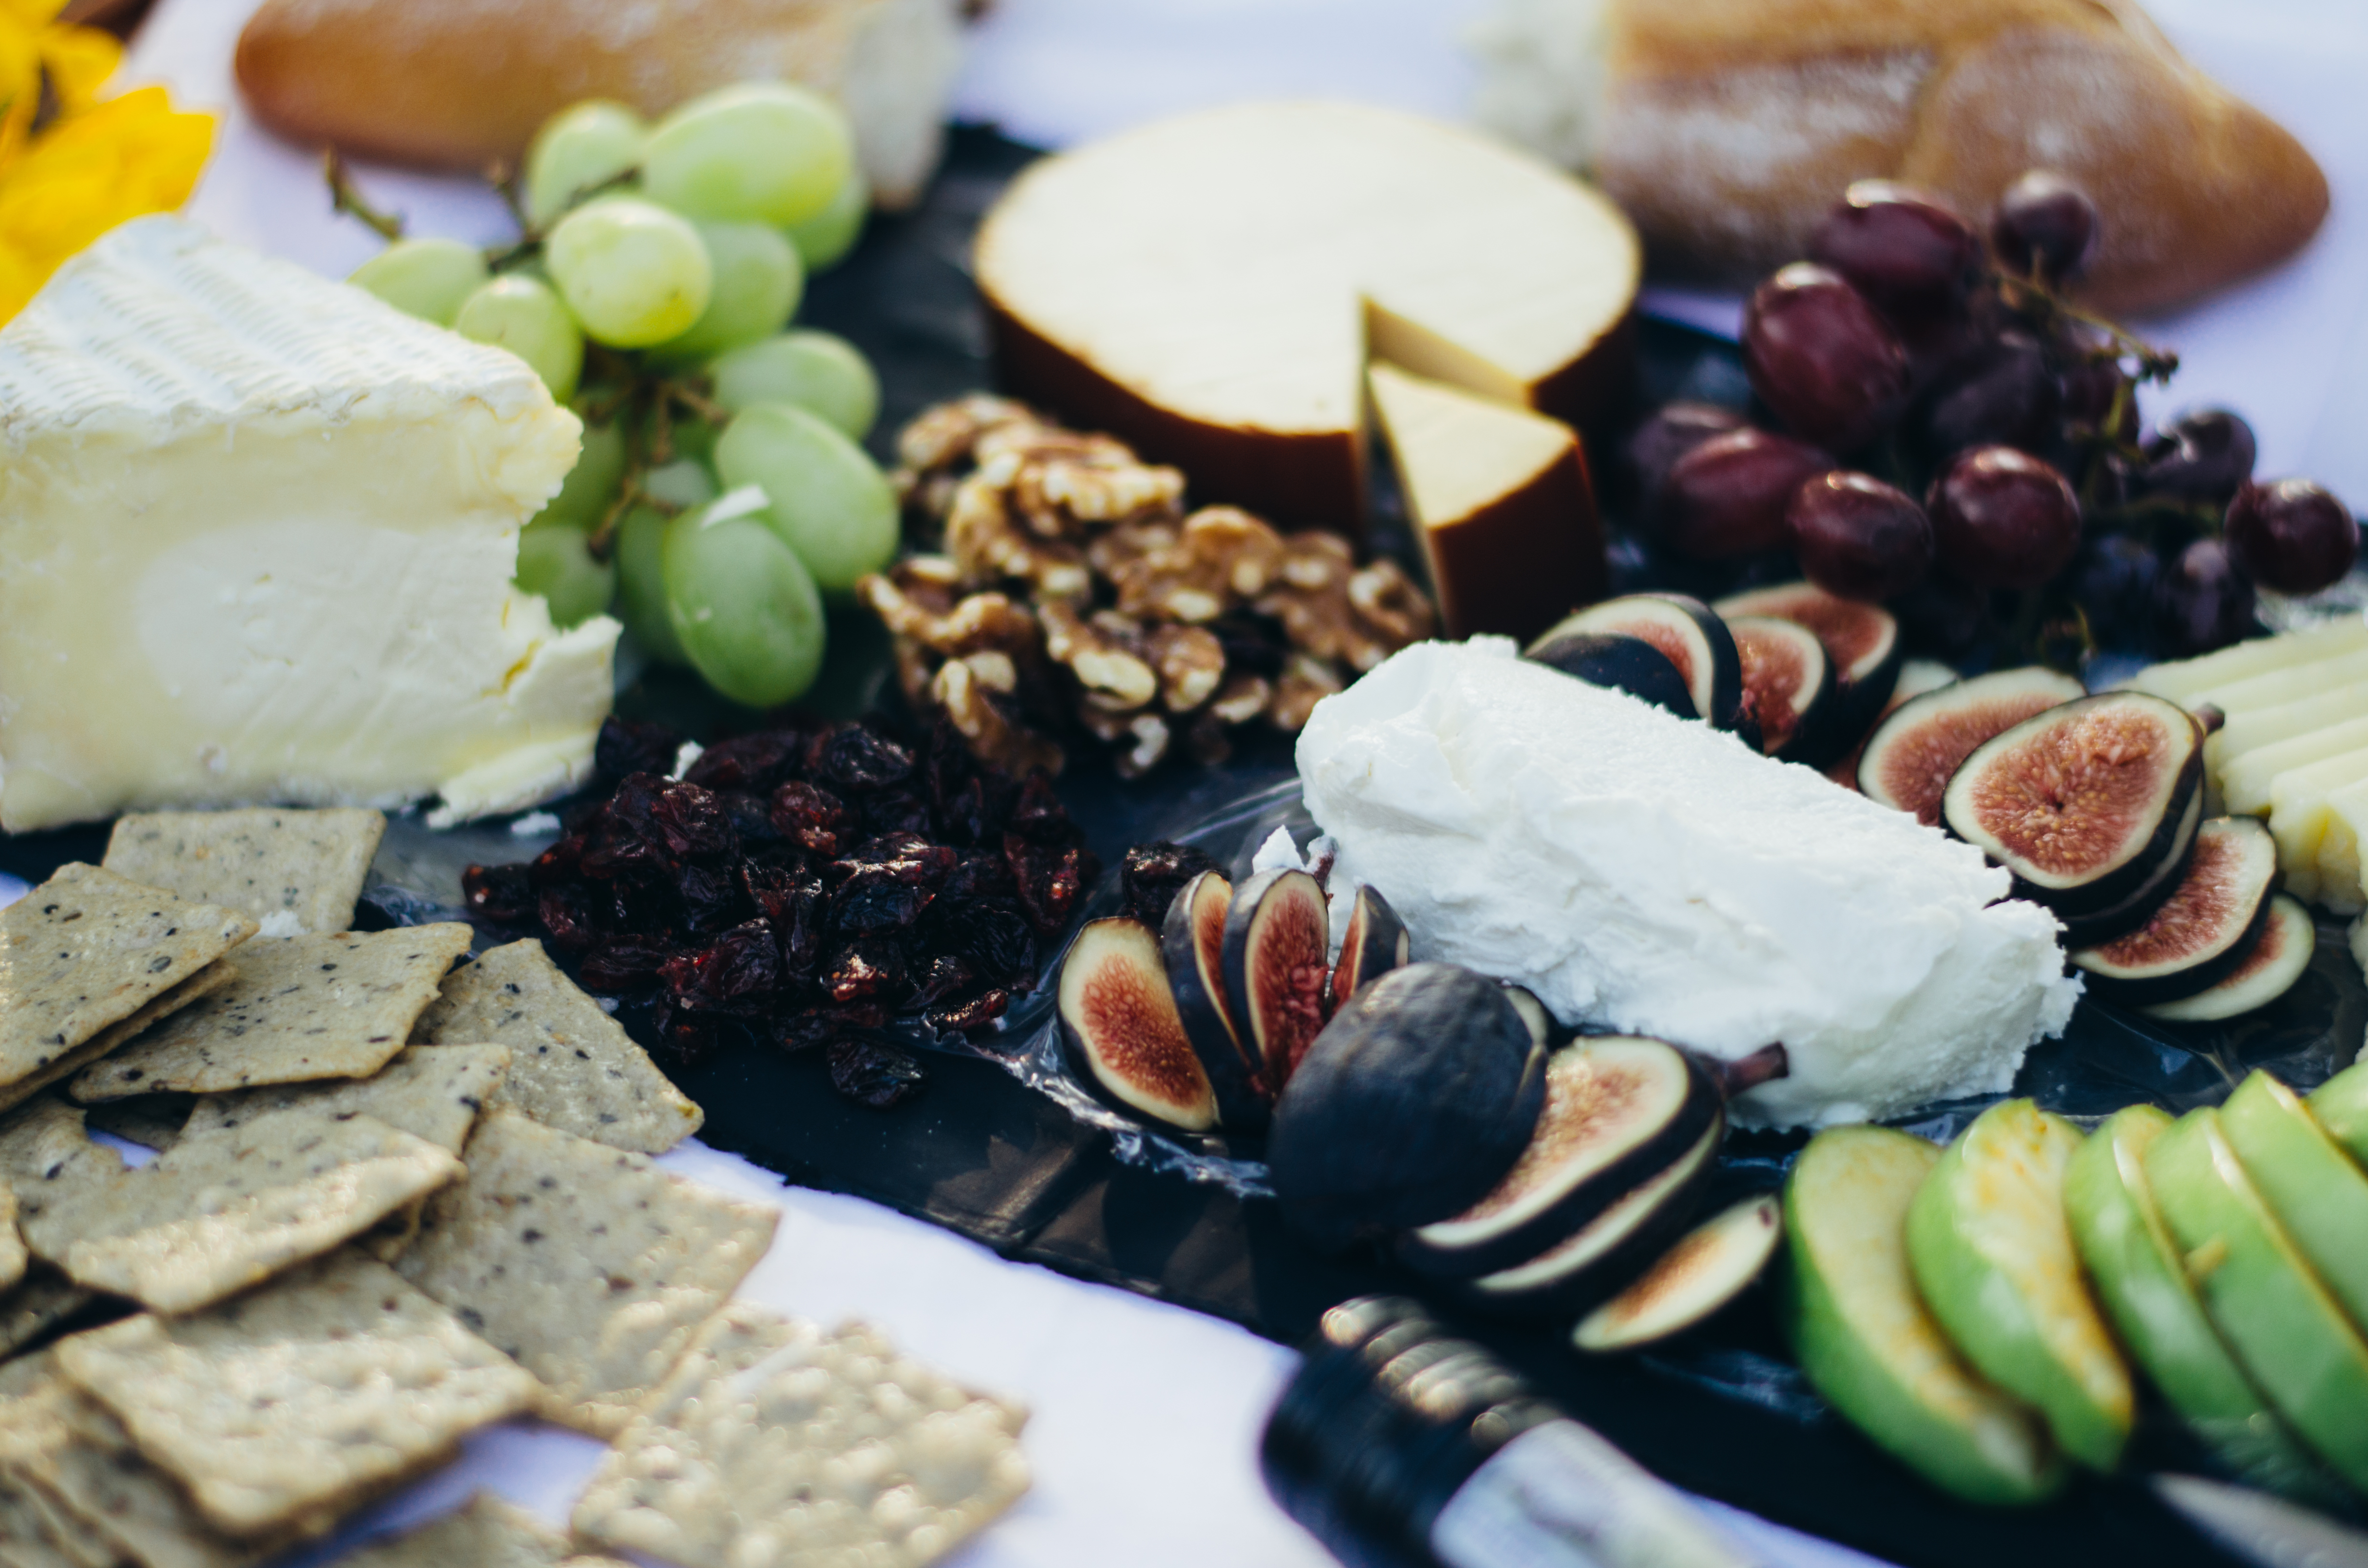 The perfect Fall Cheese Board on juliettelaura.blogspot.com